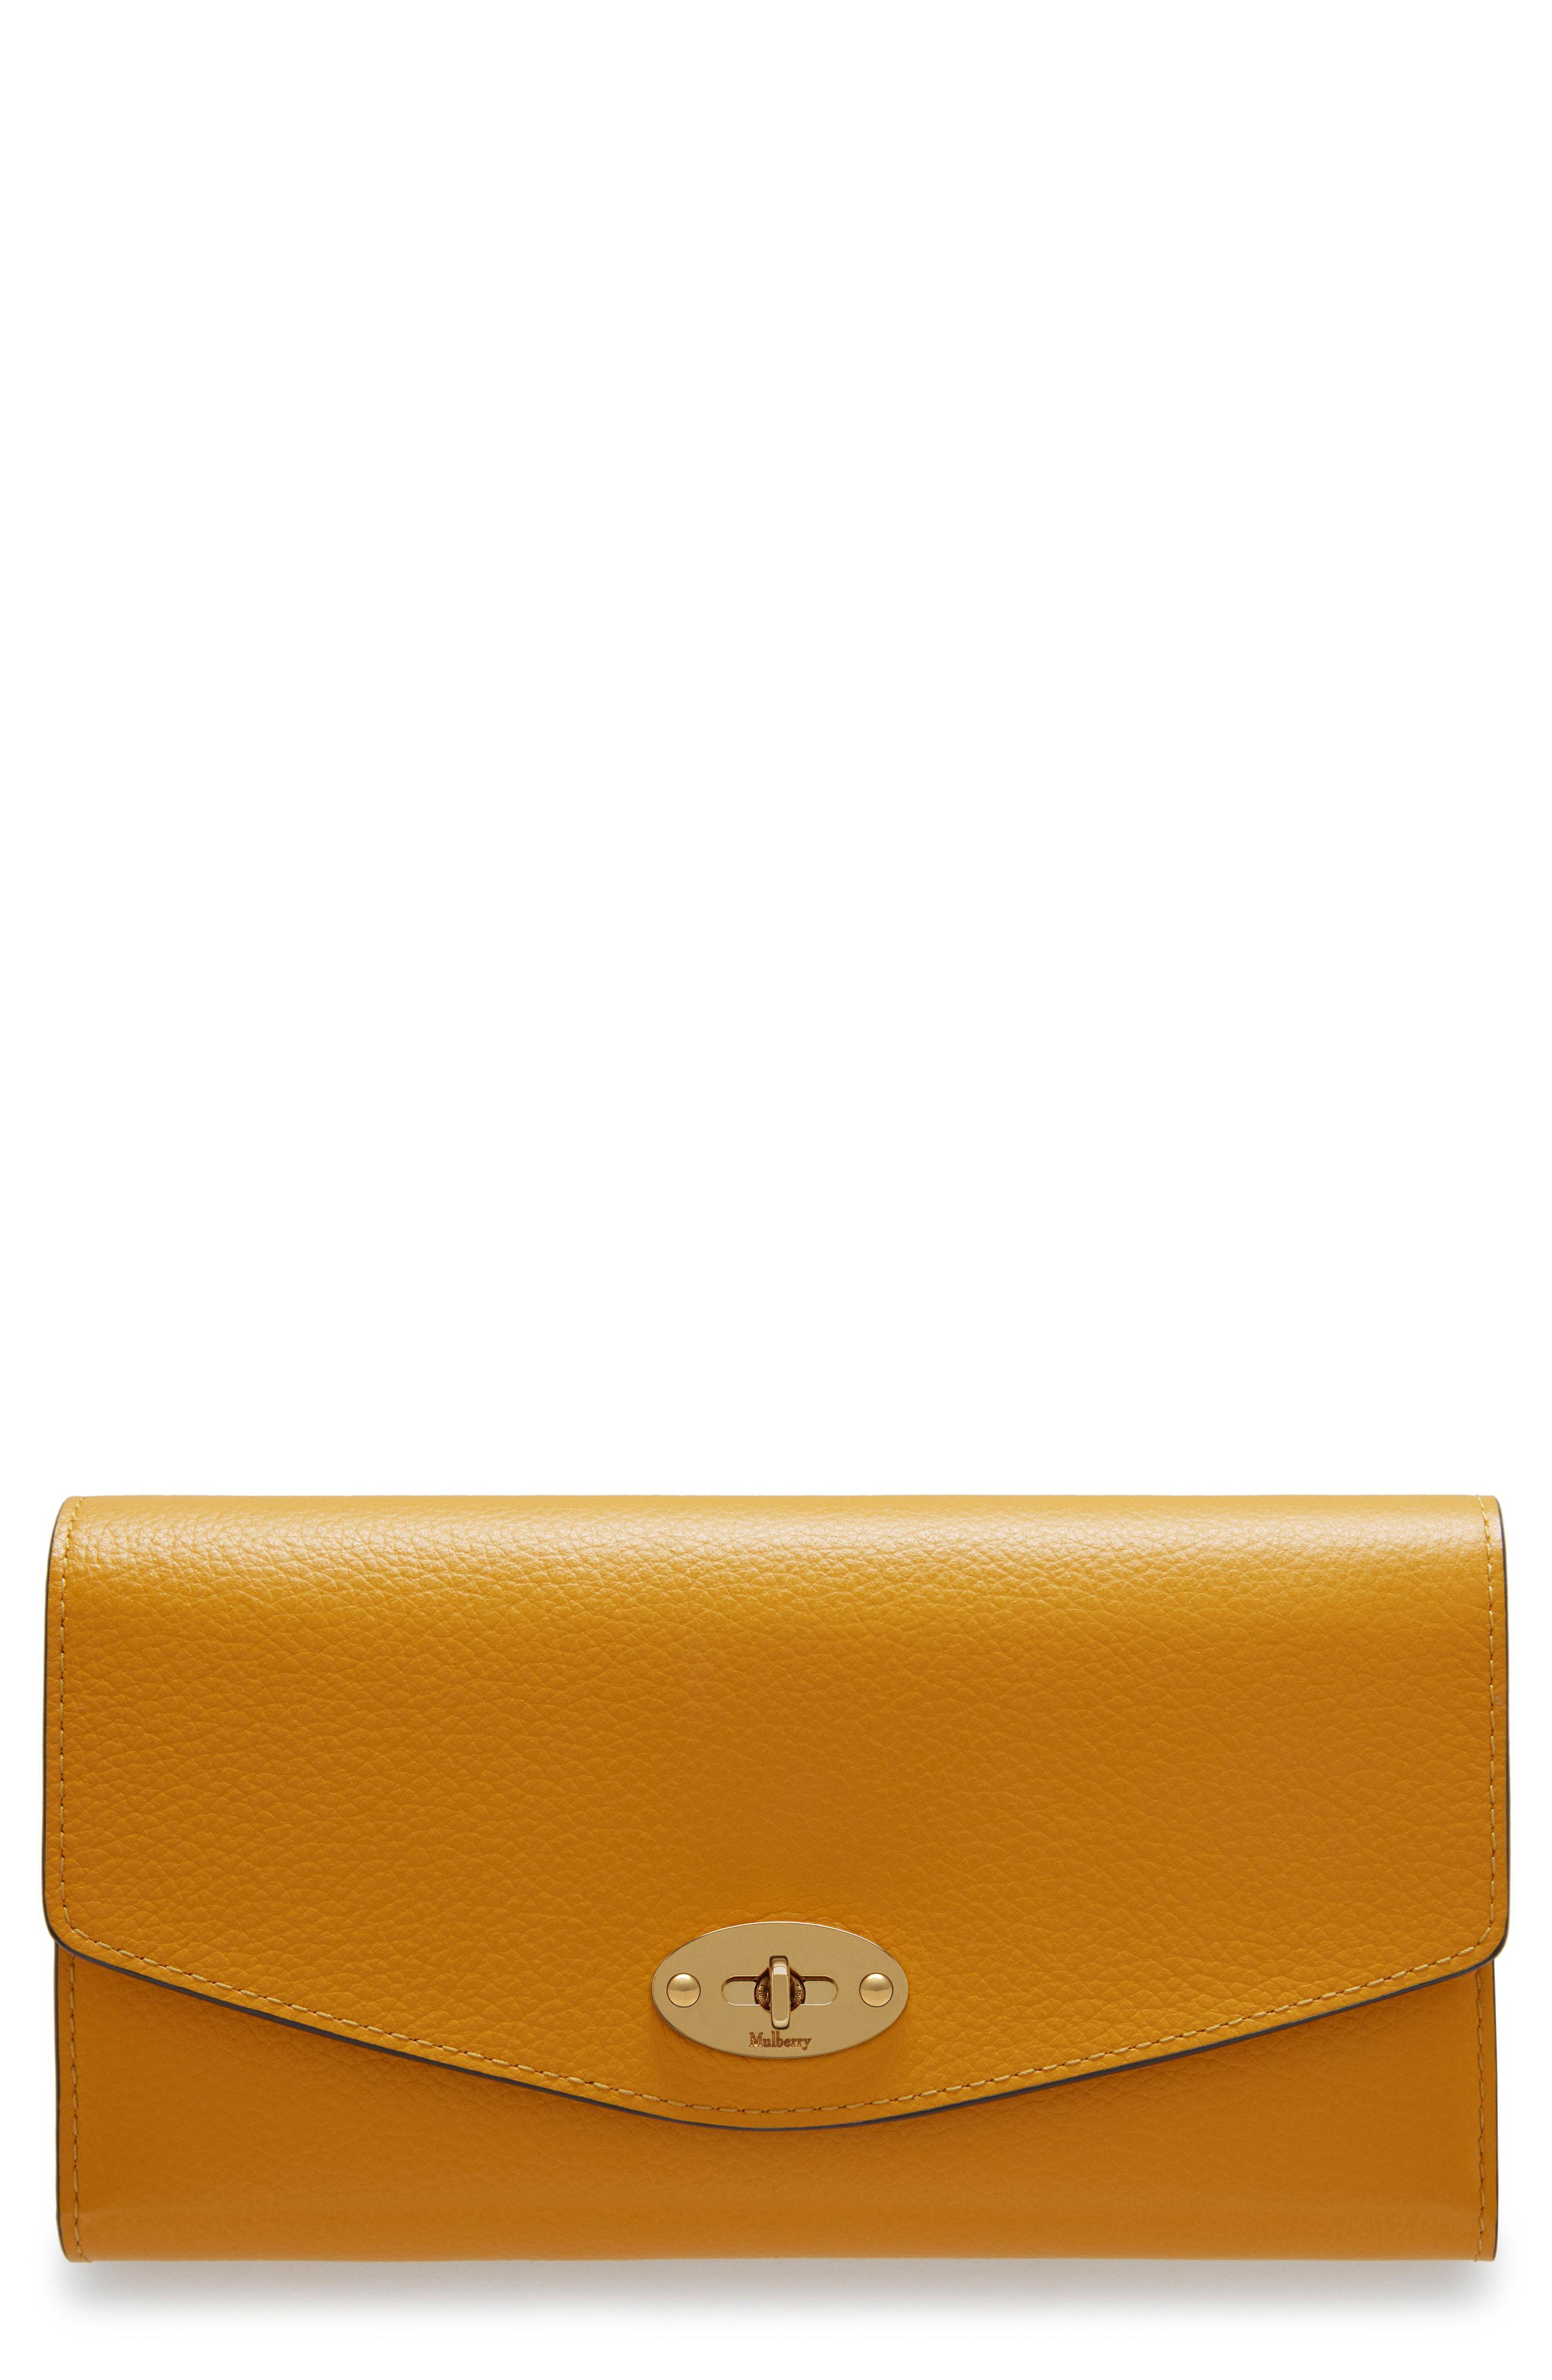 ae07343631 Mulberry - Yellow Darley Continental Leather Wallet - Lyst. View fullscreen